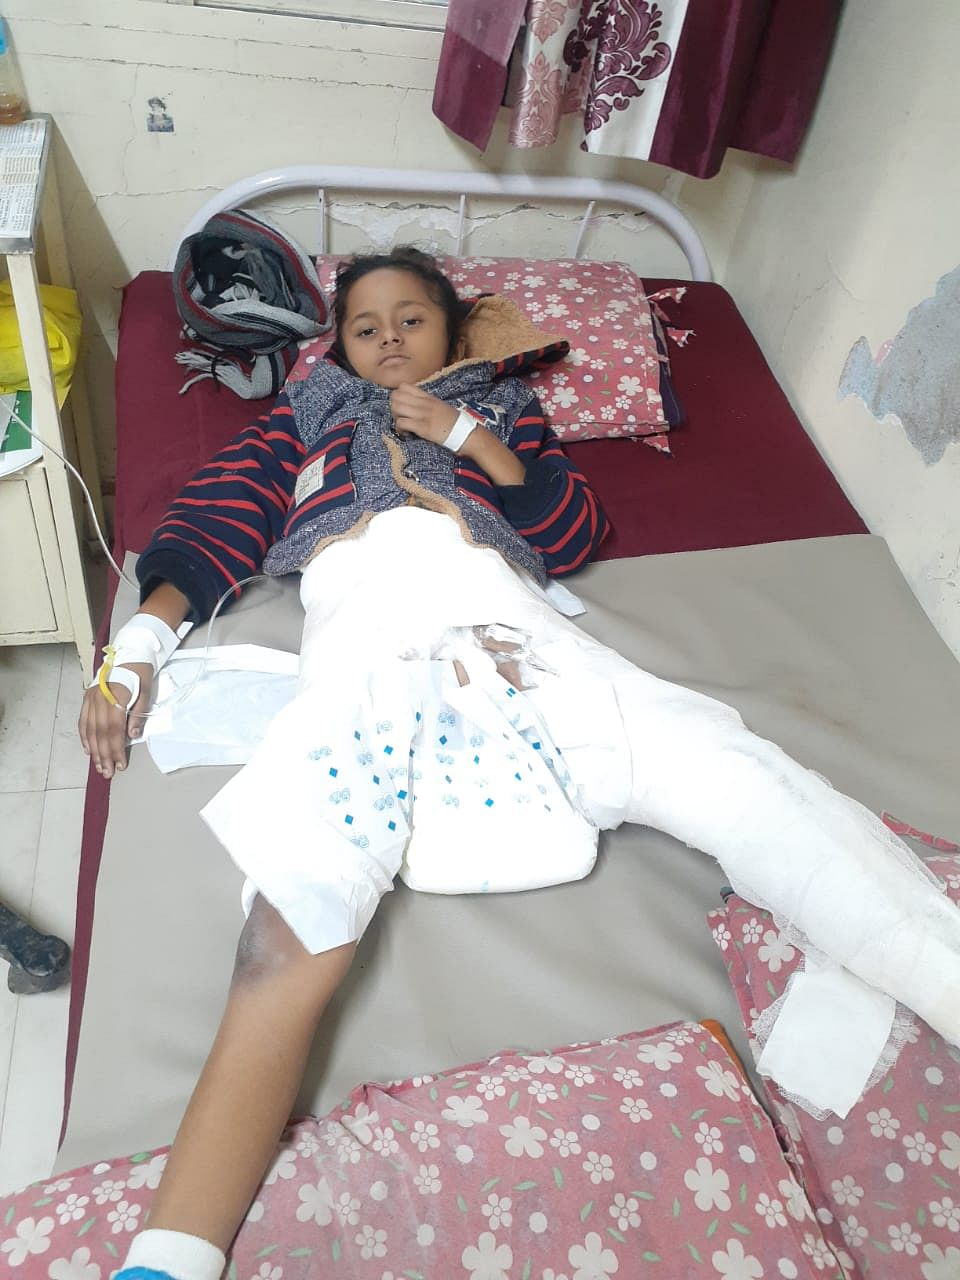 10-year-old Tanishka Verma with plaster on her leg